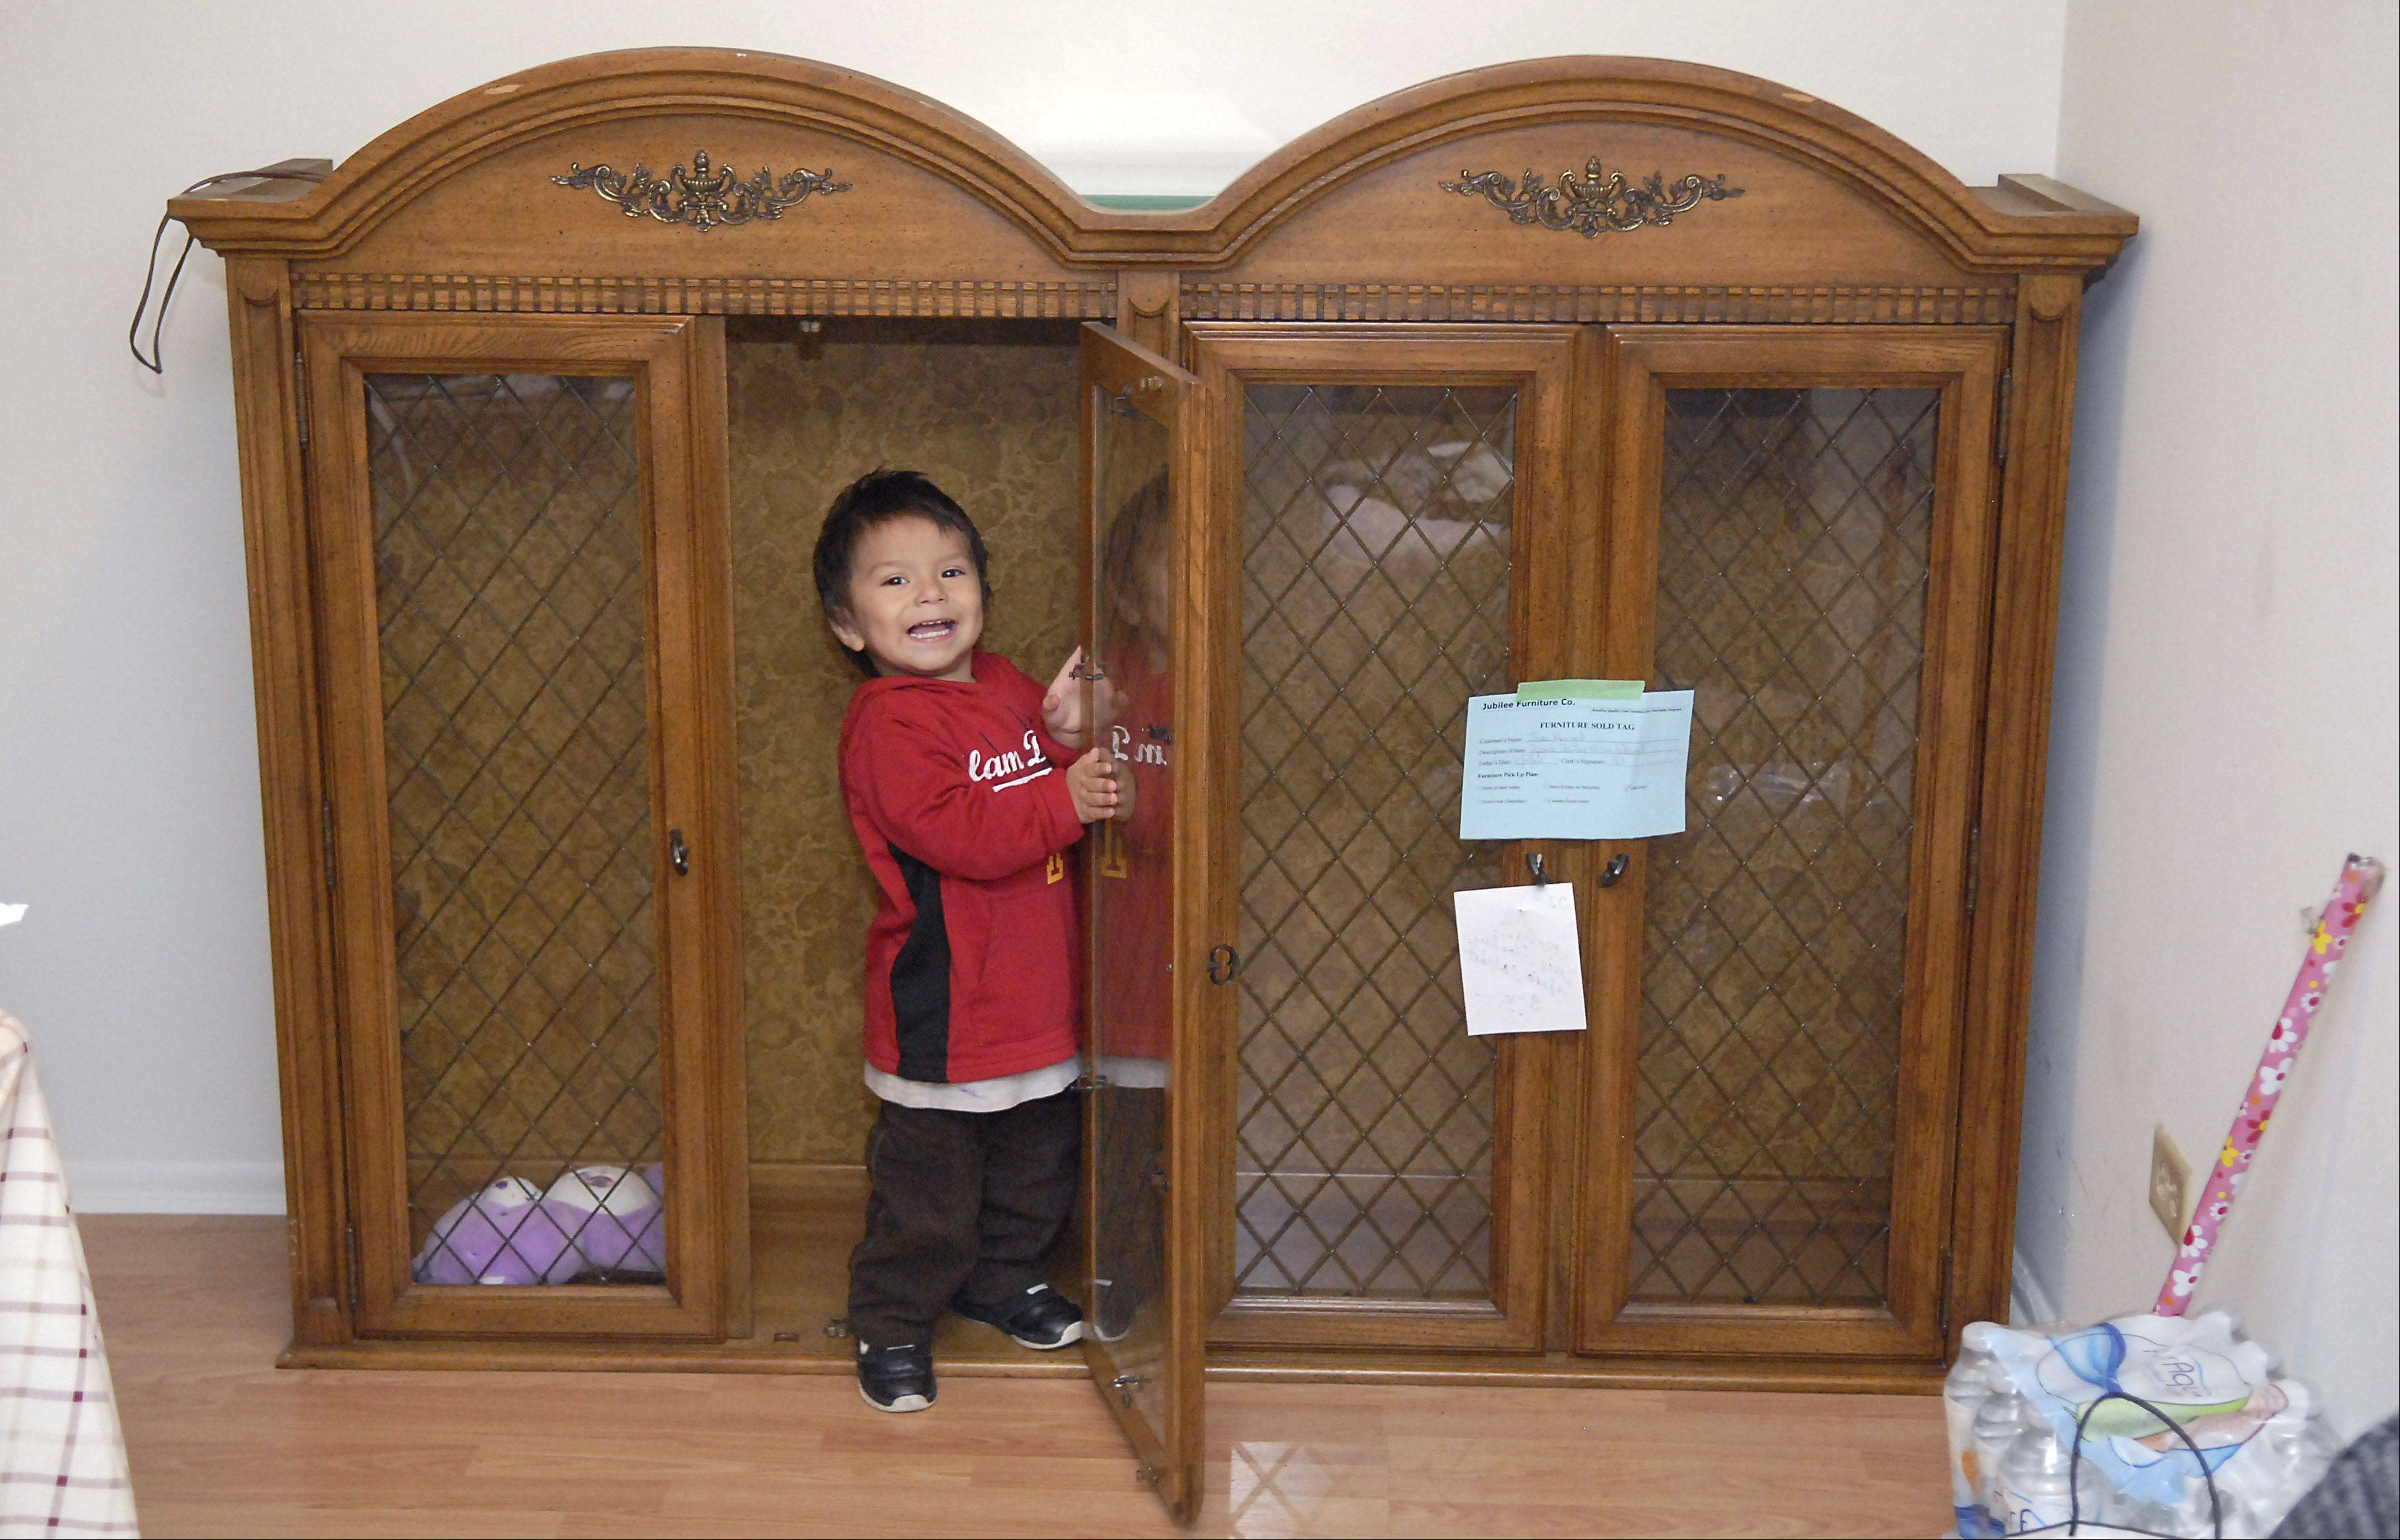 Alexis Rangel, 2, plays in top part of a new curio cabinet delivered to his parents, Juana Beltran and Jose Rangel, on Saturday. They were one of eight families living in the apartments damaged by fire on Nov. 4. Community Outreach Ministries and Wheaton Bible Church worked with the West Chicago community to gather and fund the replacement furniture.